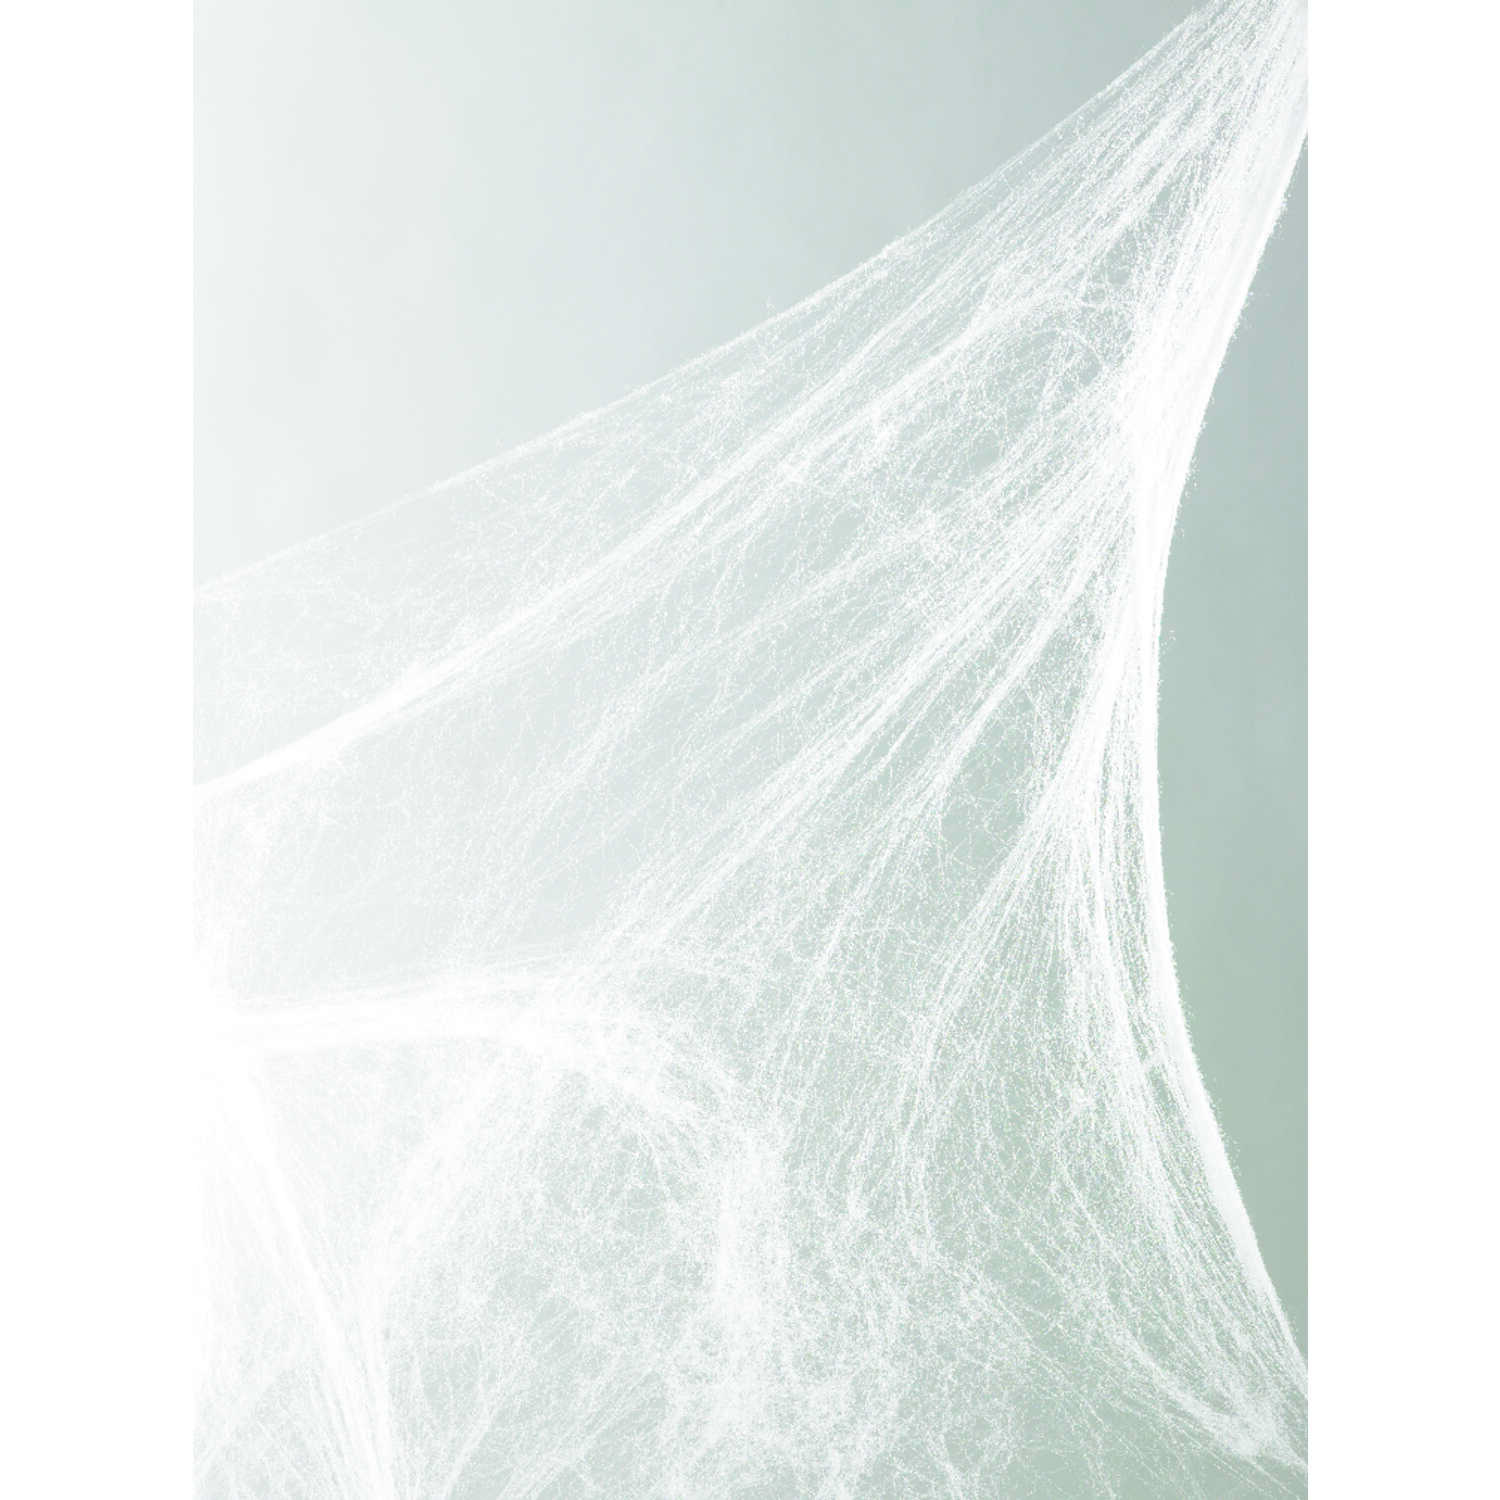 Fun World  Spider Web  Halloween Decoration  18 in. H x 18 in. W x 11 in. L 1 pk